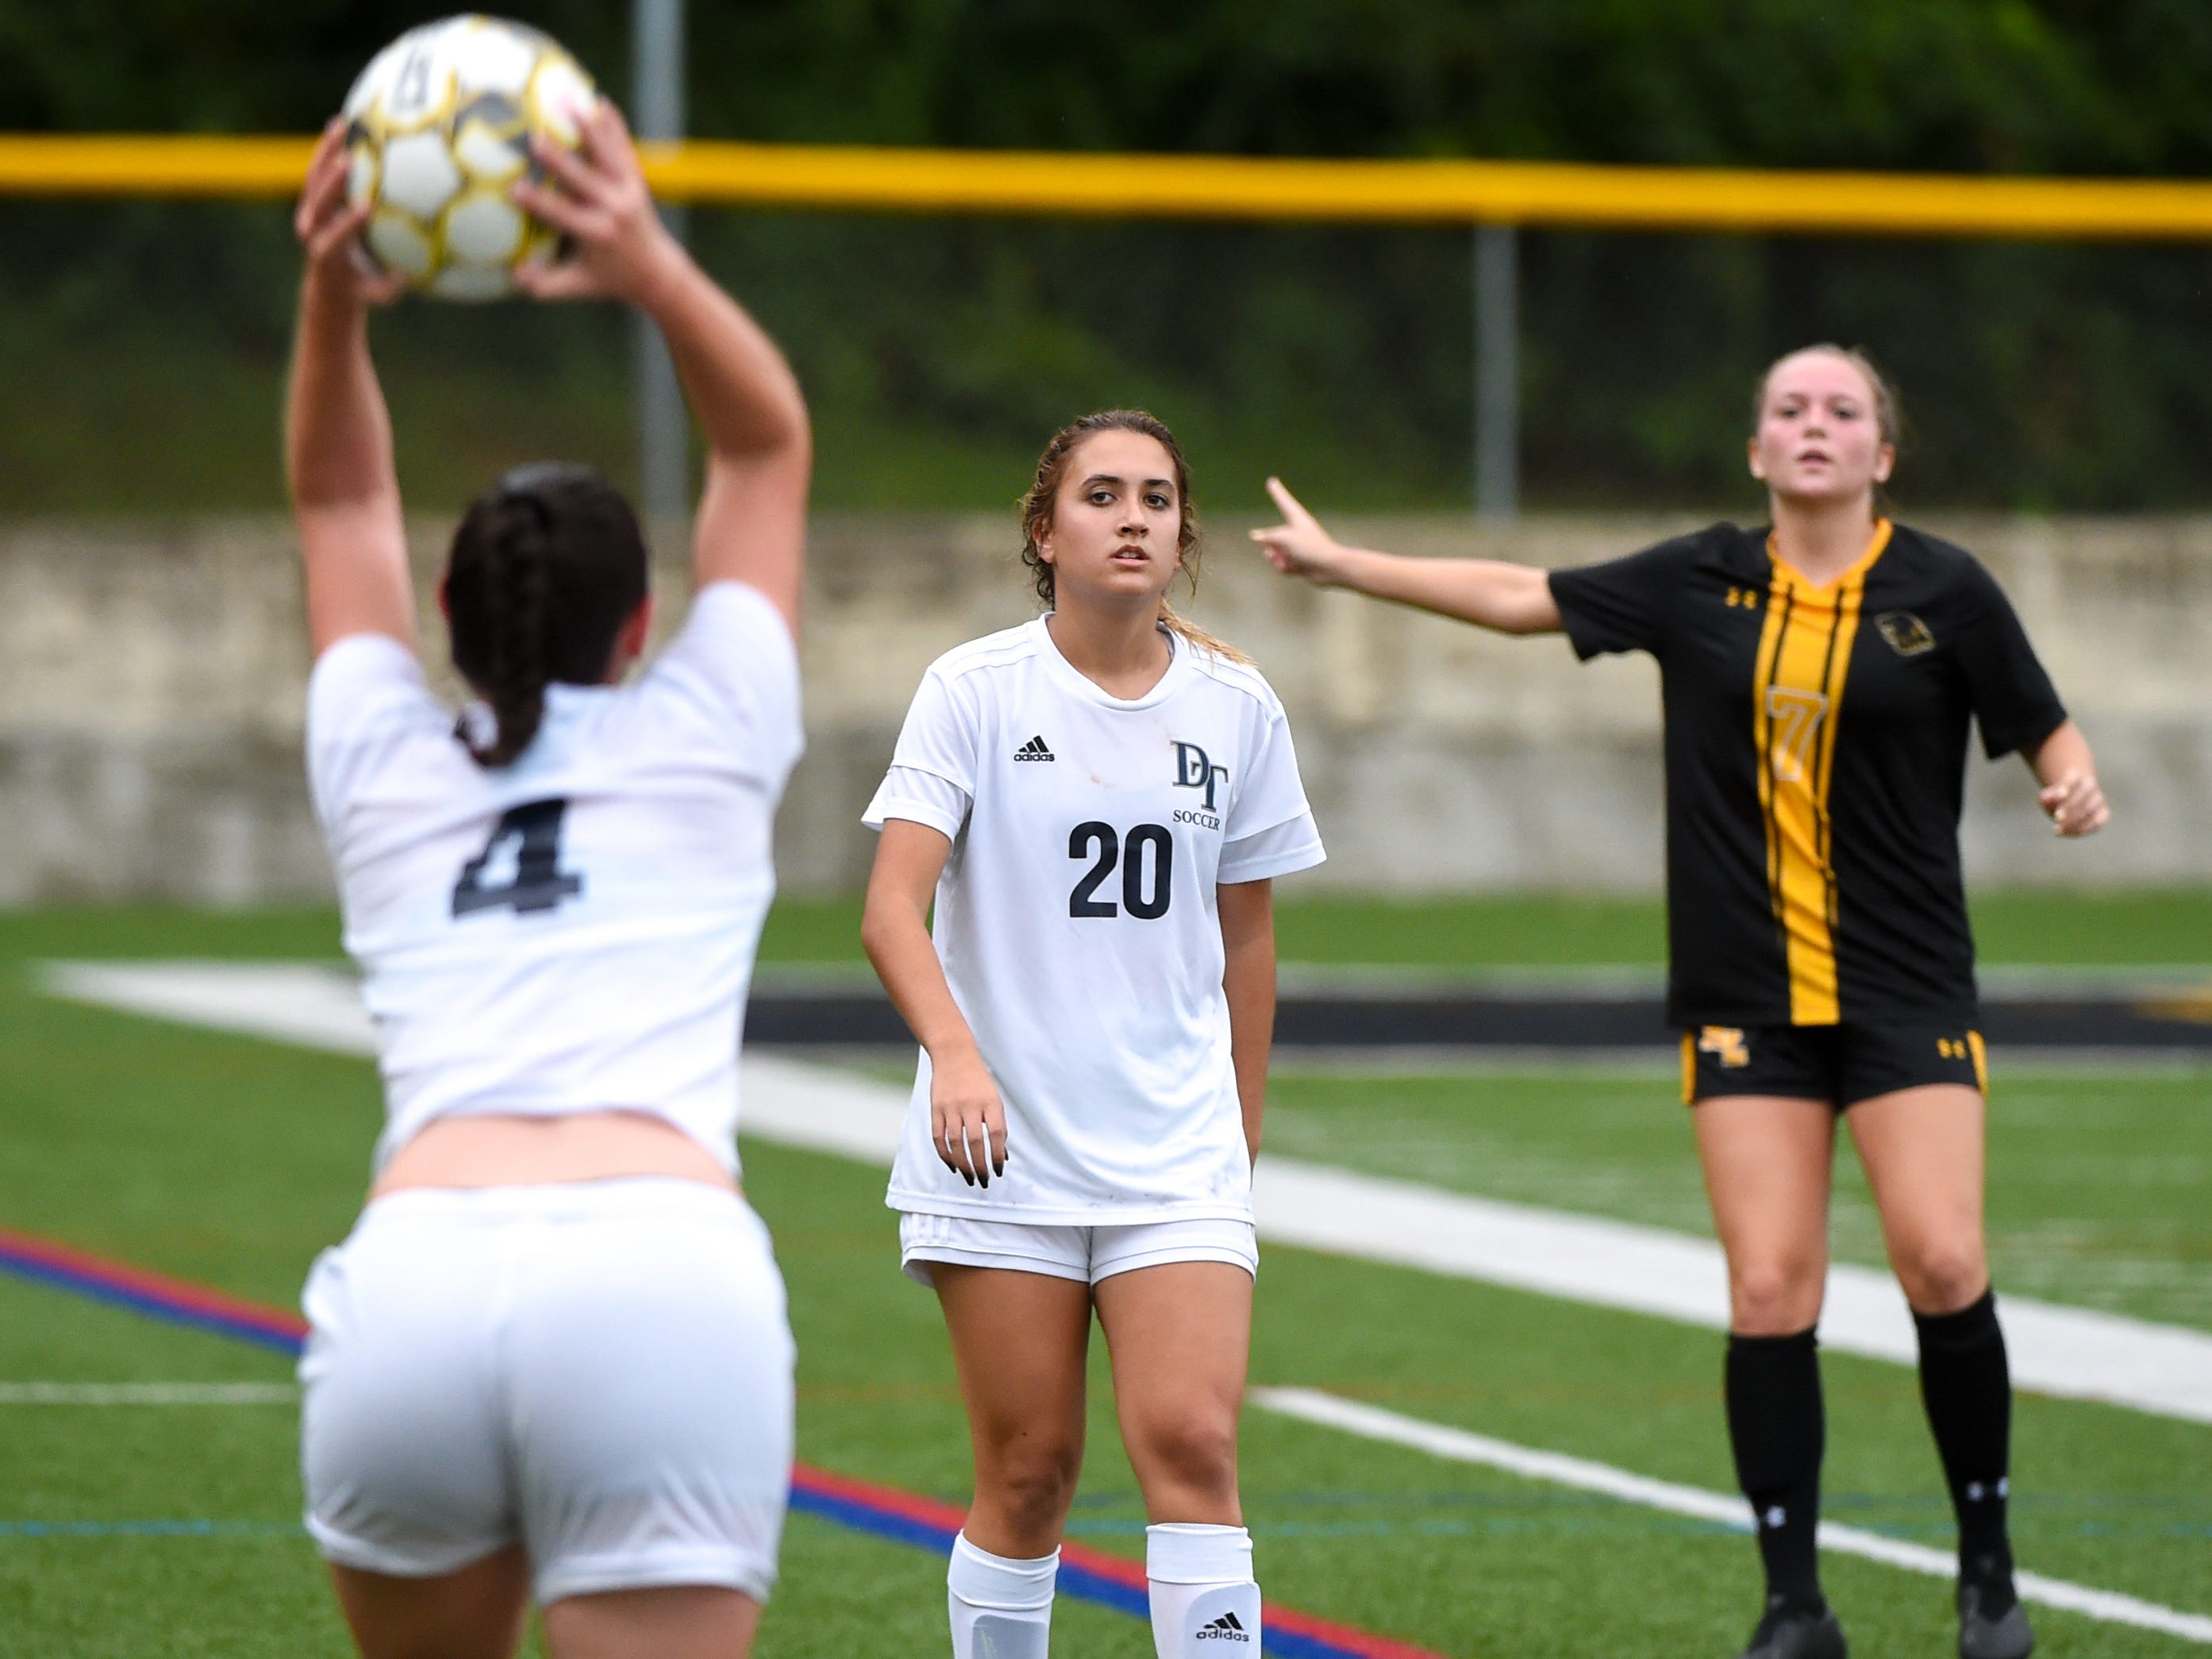 Jordan Lese (20) of Dallastown prepares to receive the throw in during the girls soccer game between Red Lion and Dallastown, October 11, 2018. The Lady Lions beat the Wildcats 4-0.